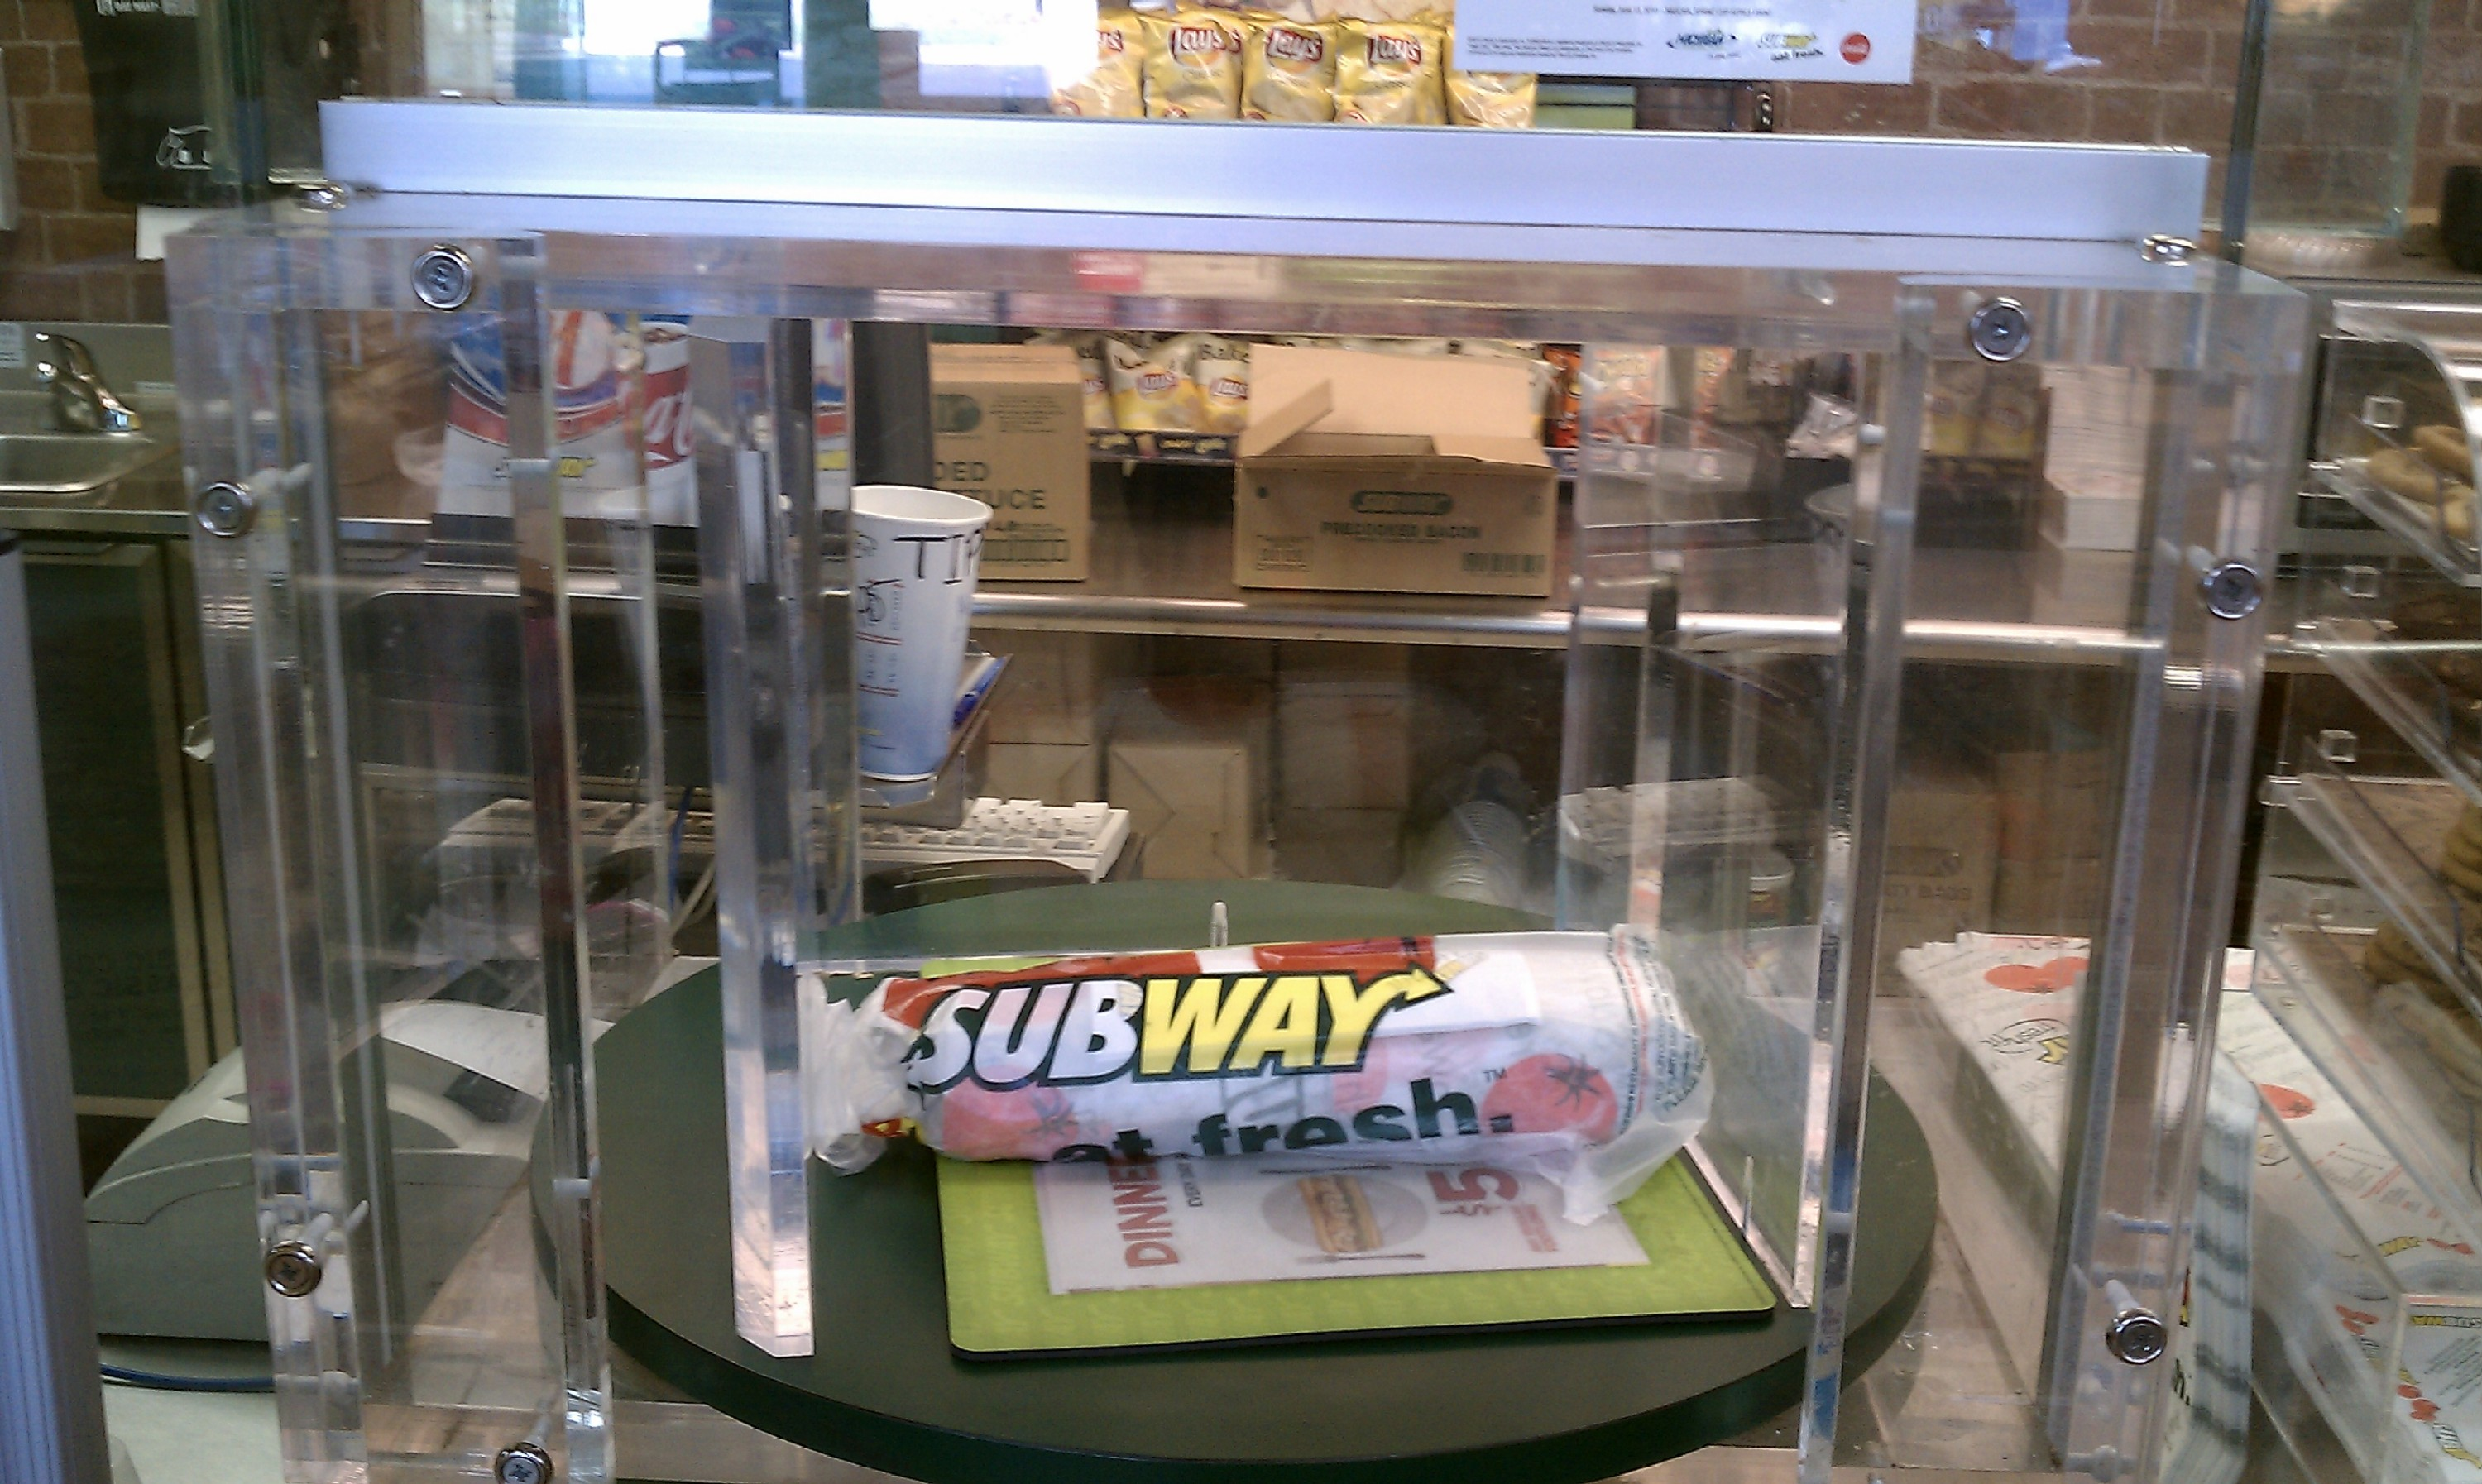 70035d1287966364 im spreading rumor downtown grocery store subway free gay sex videos ass fuck.